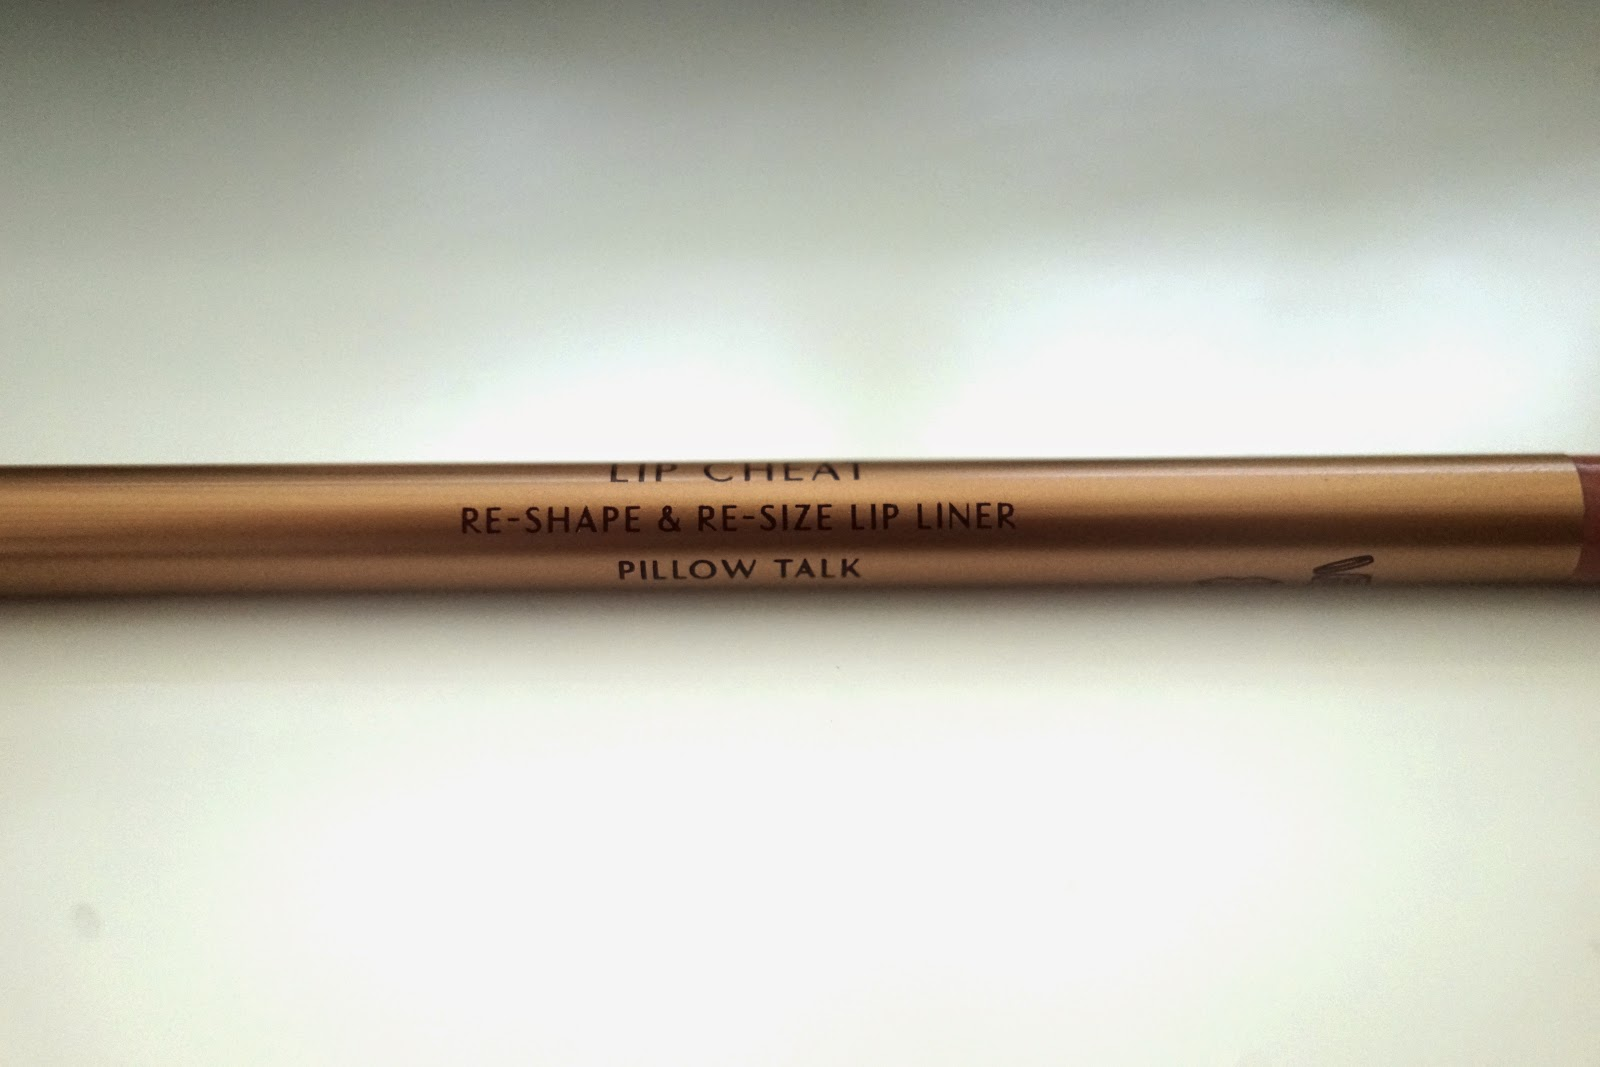 Charlotte Tilbury Lip Cheat, Re-Shape & Re-Size Lip Liner pillow talk